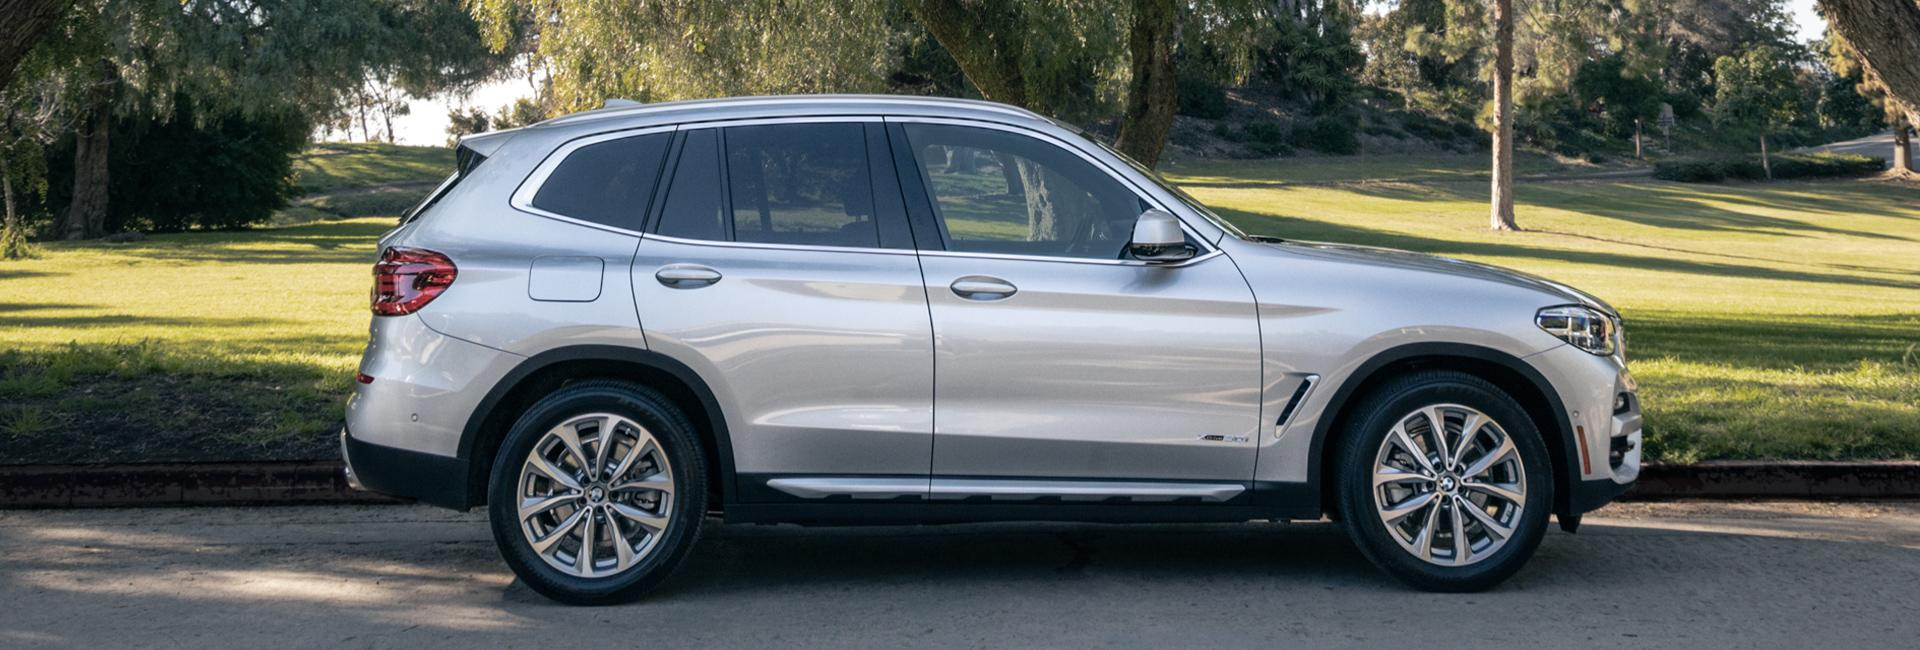 Side profile view of the 2021 BMW X3 parked